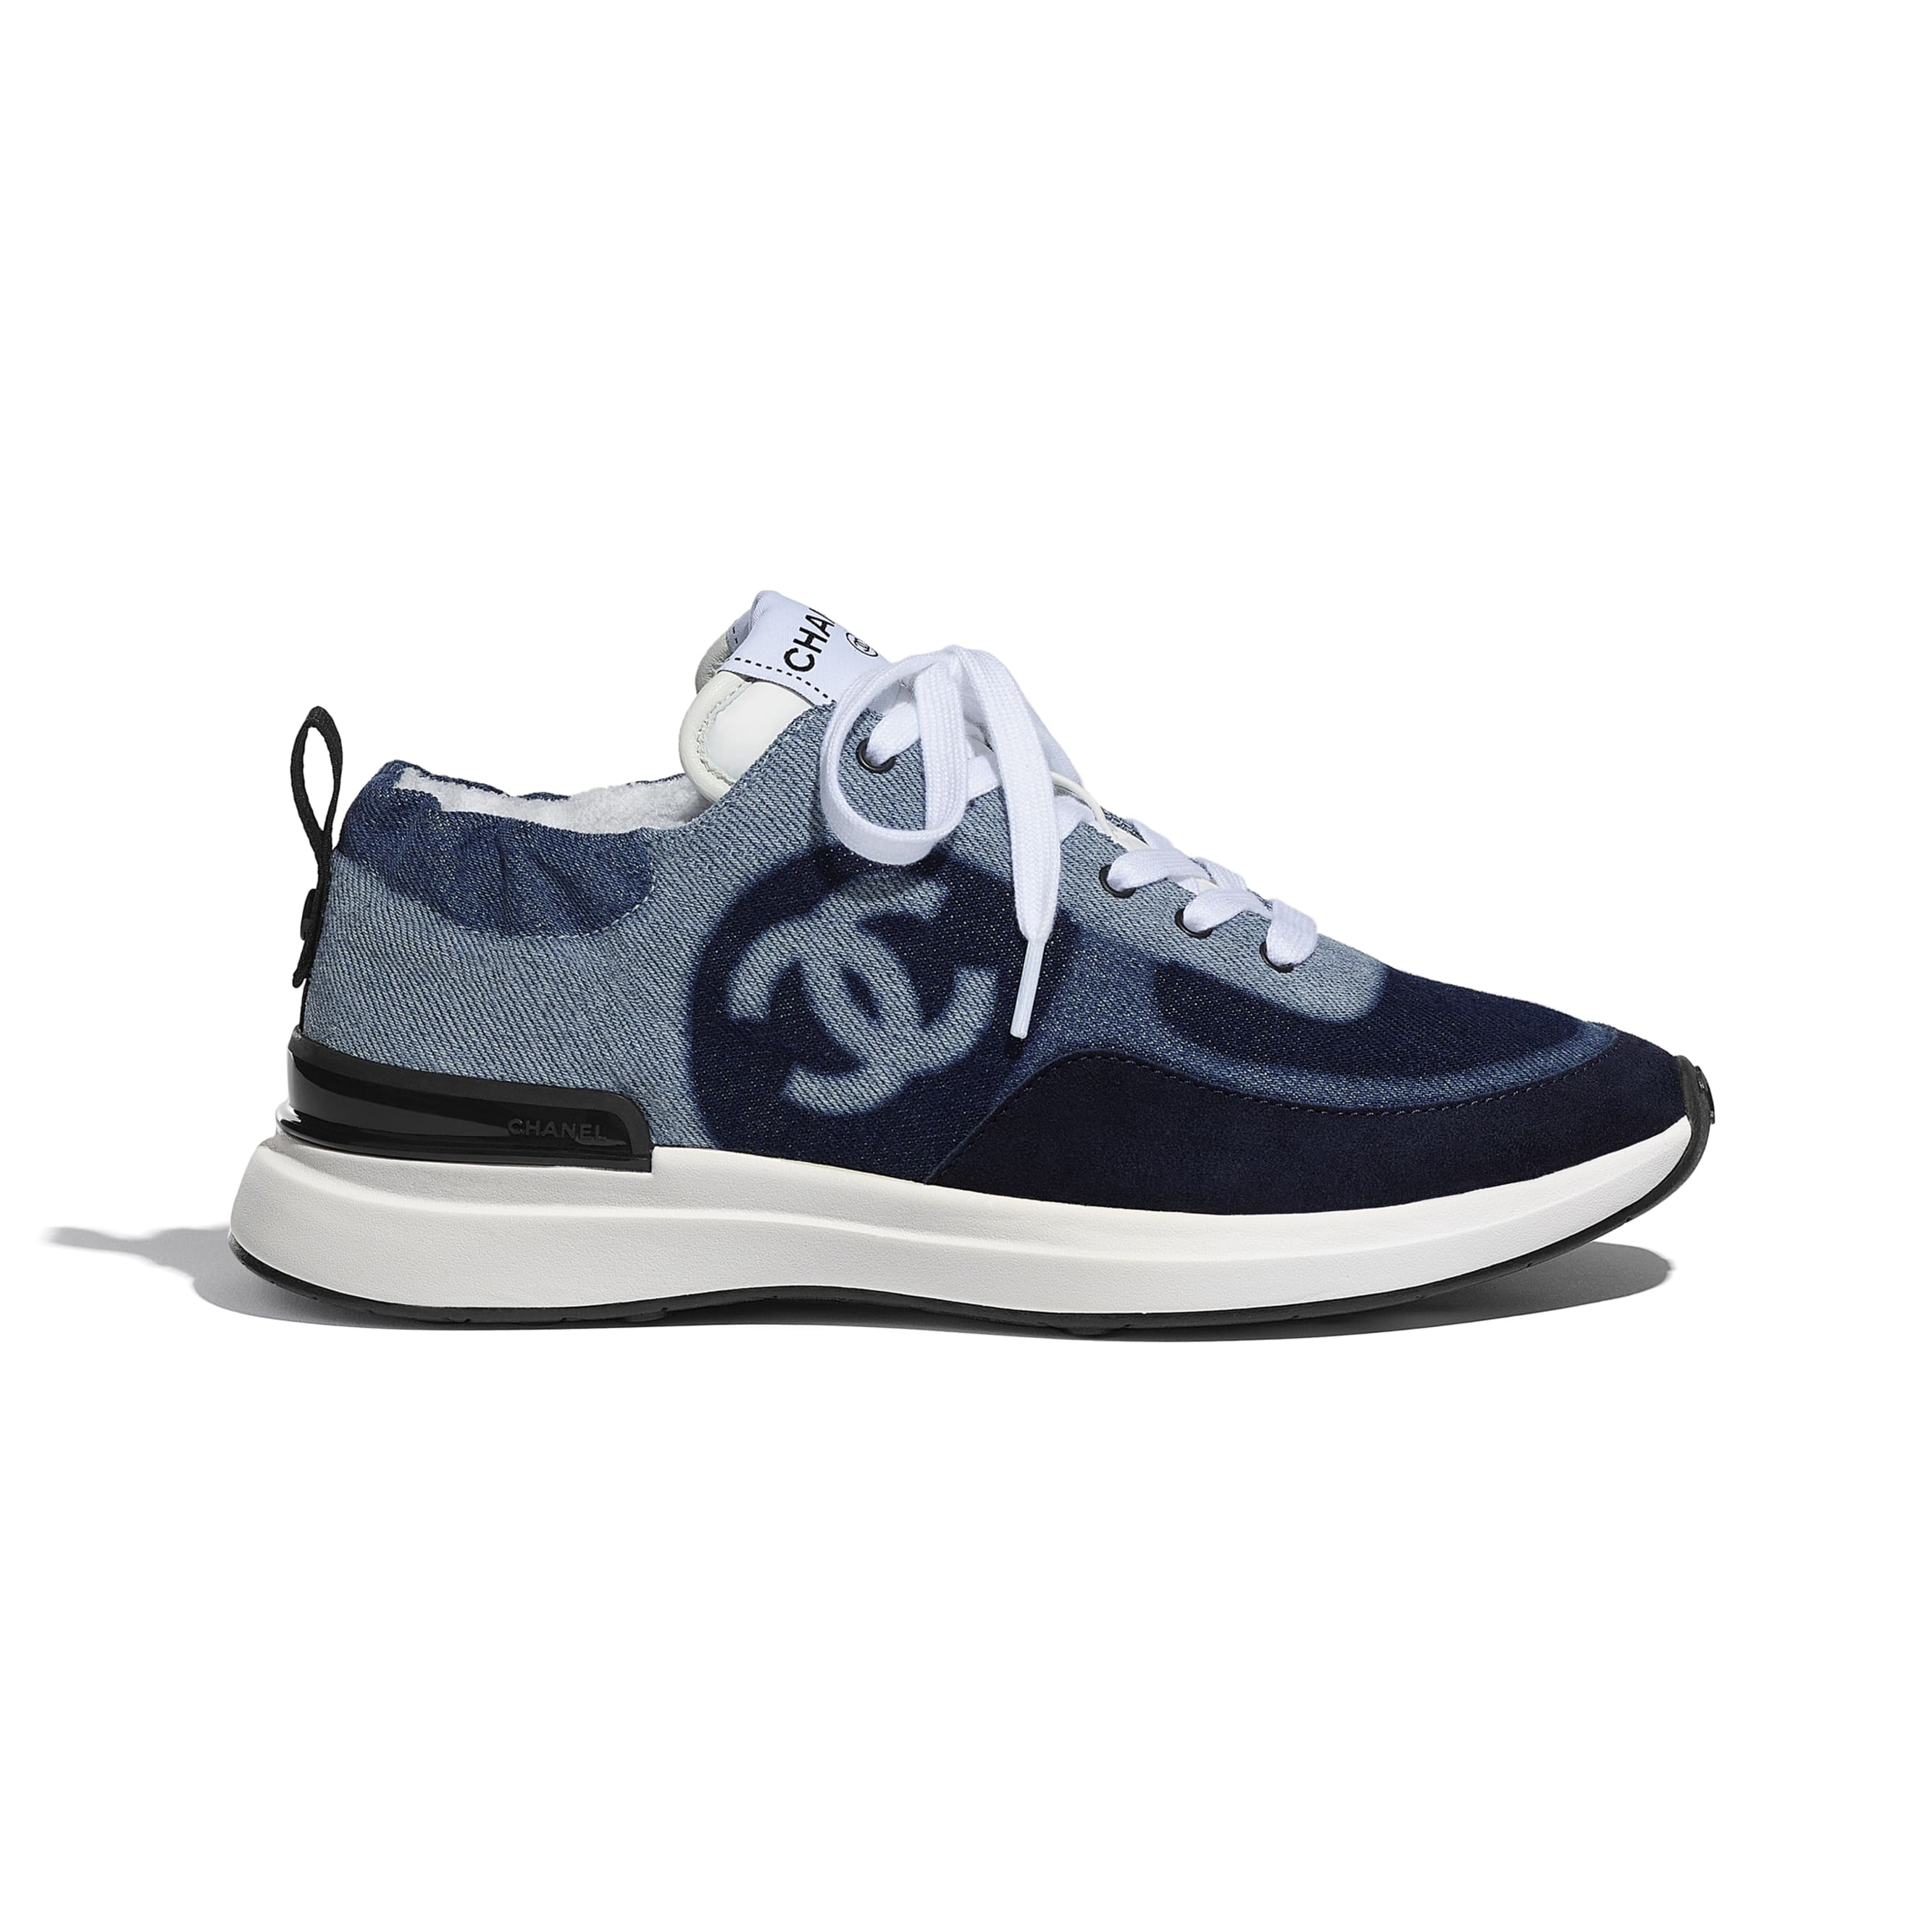 Trainers - Blue - Denim & Suede Calfskin - CHANEL - Default view - see standard sized version